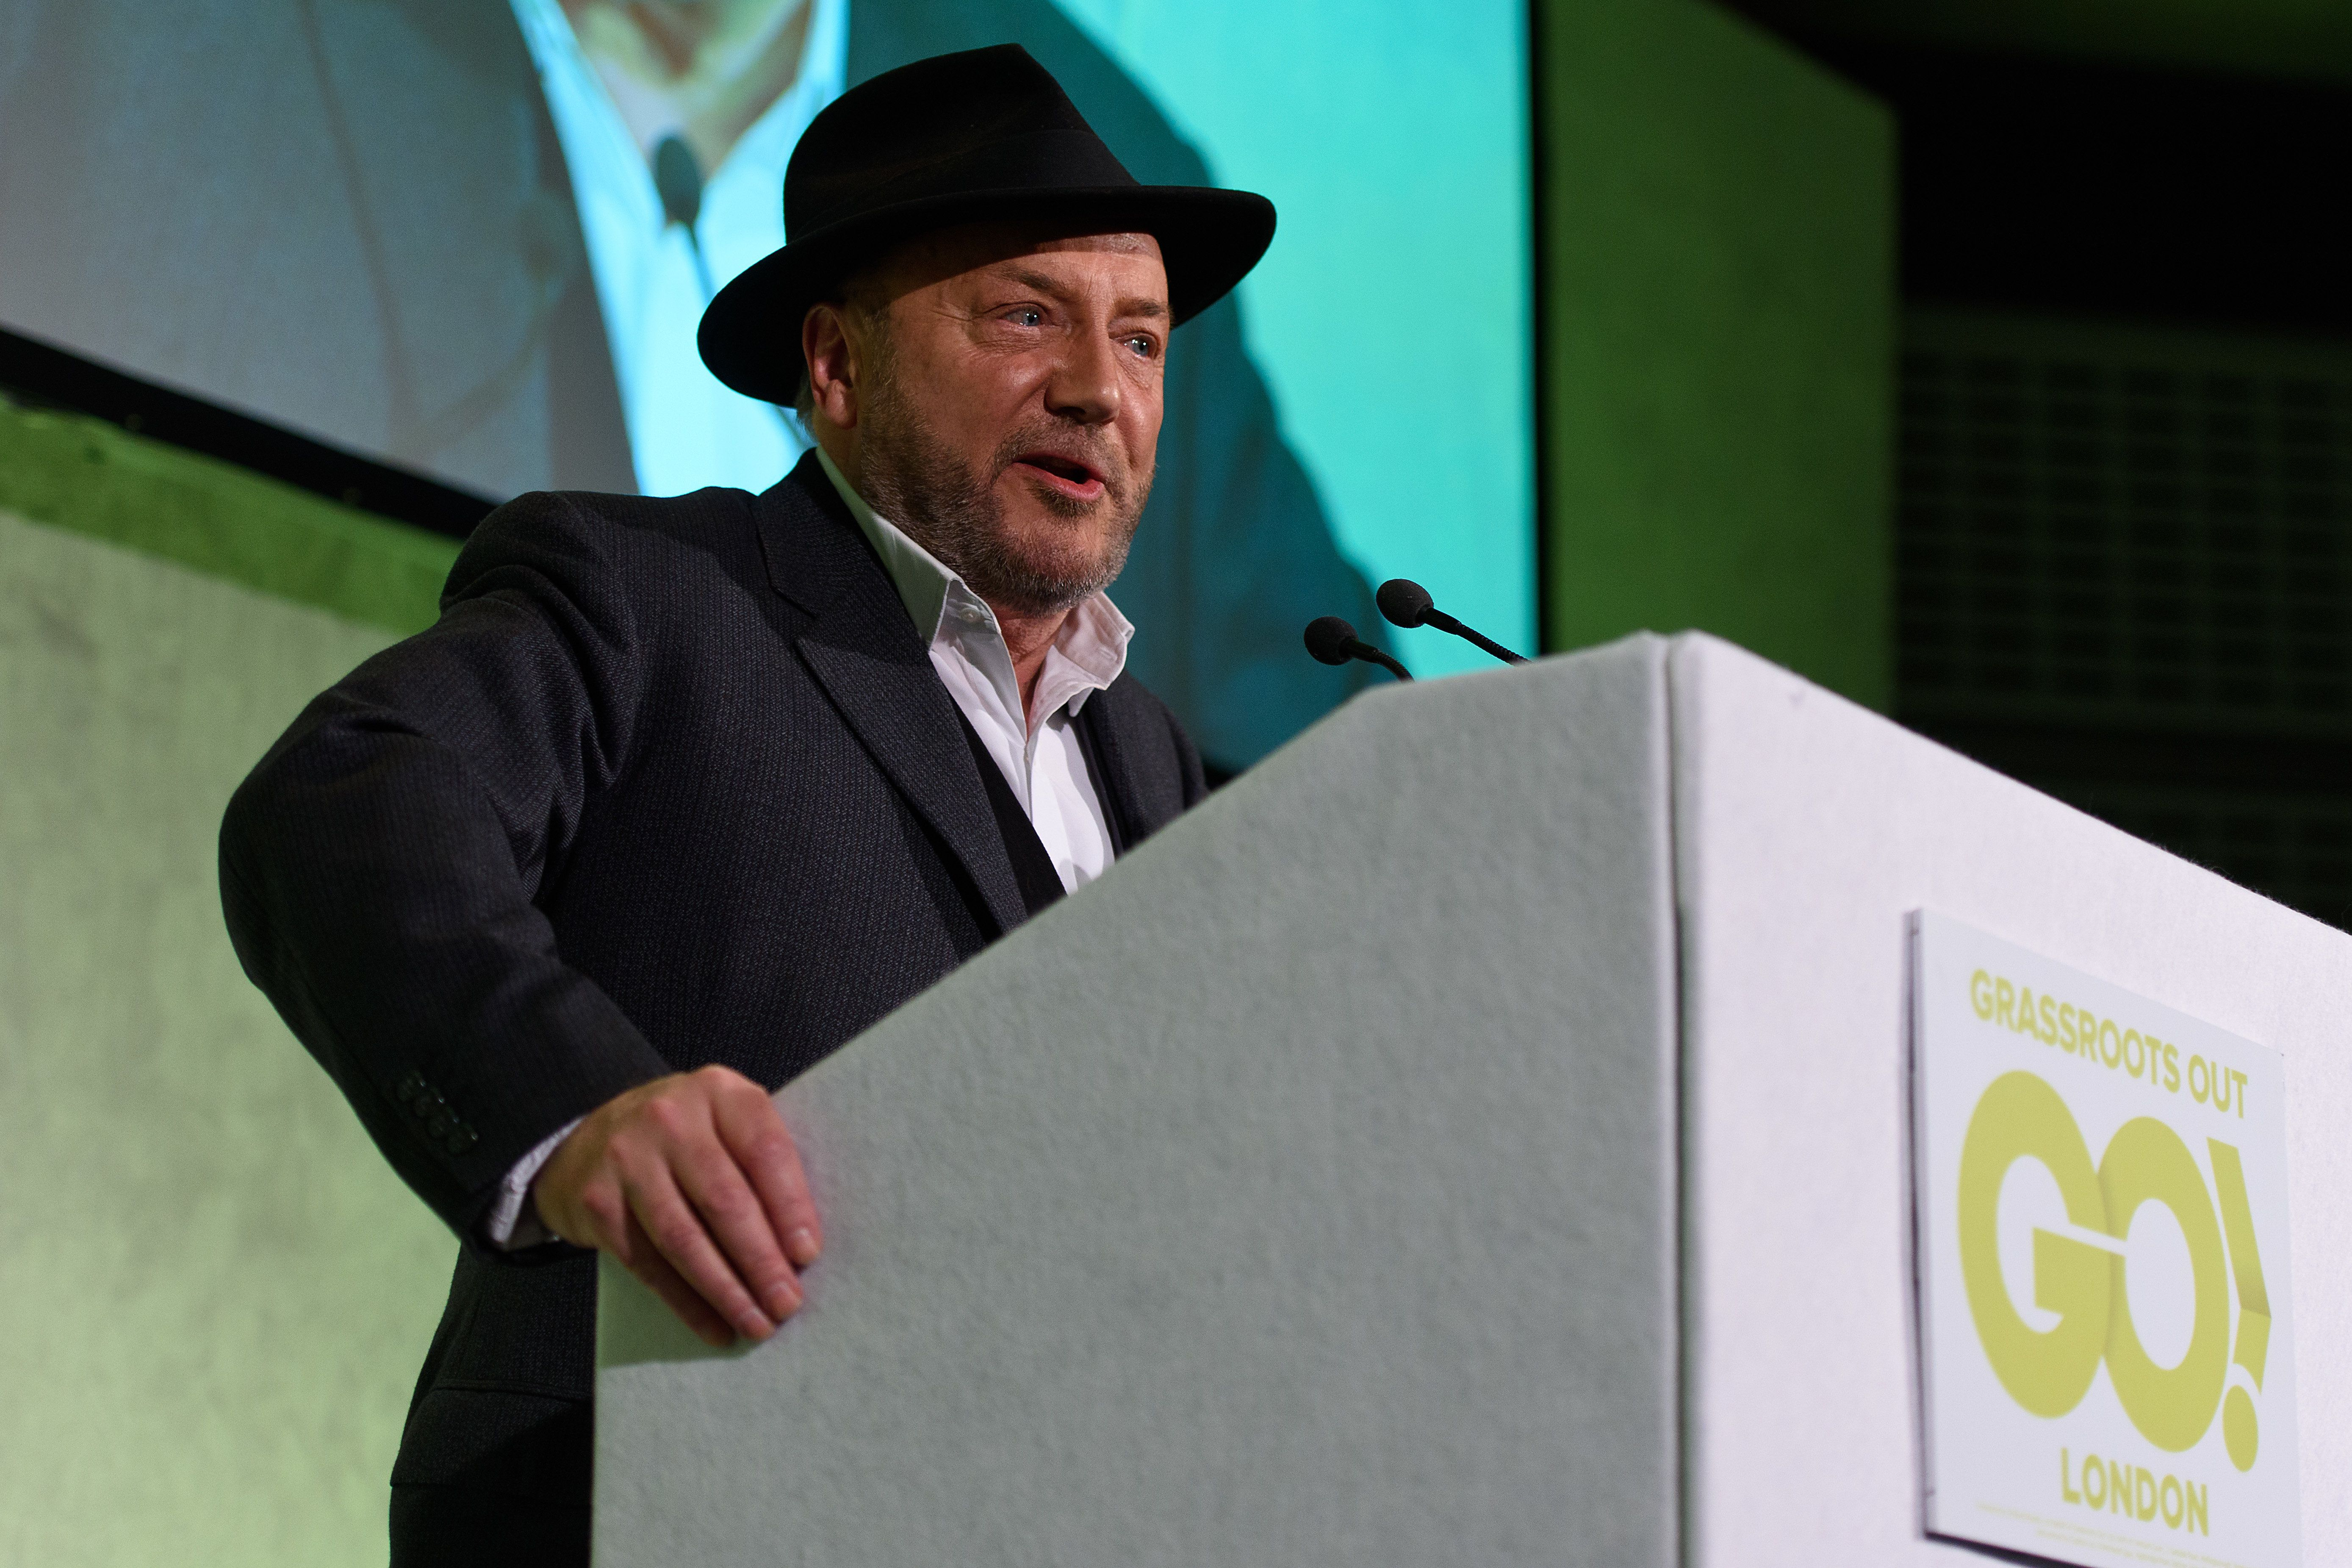 George Galloway Issues Sinister Threat If Corbyn Loses